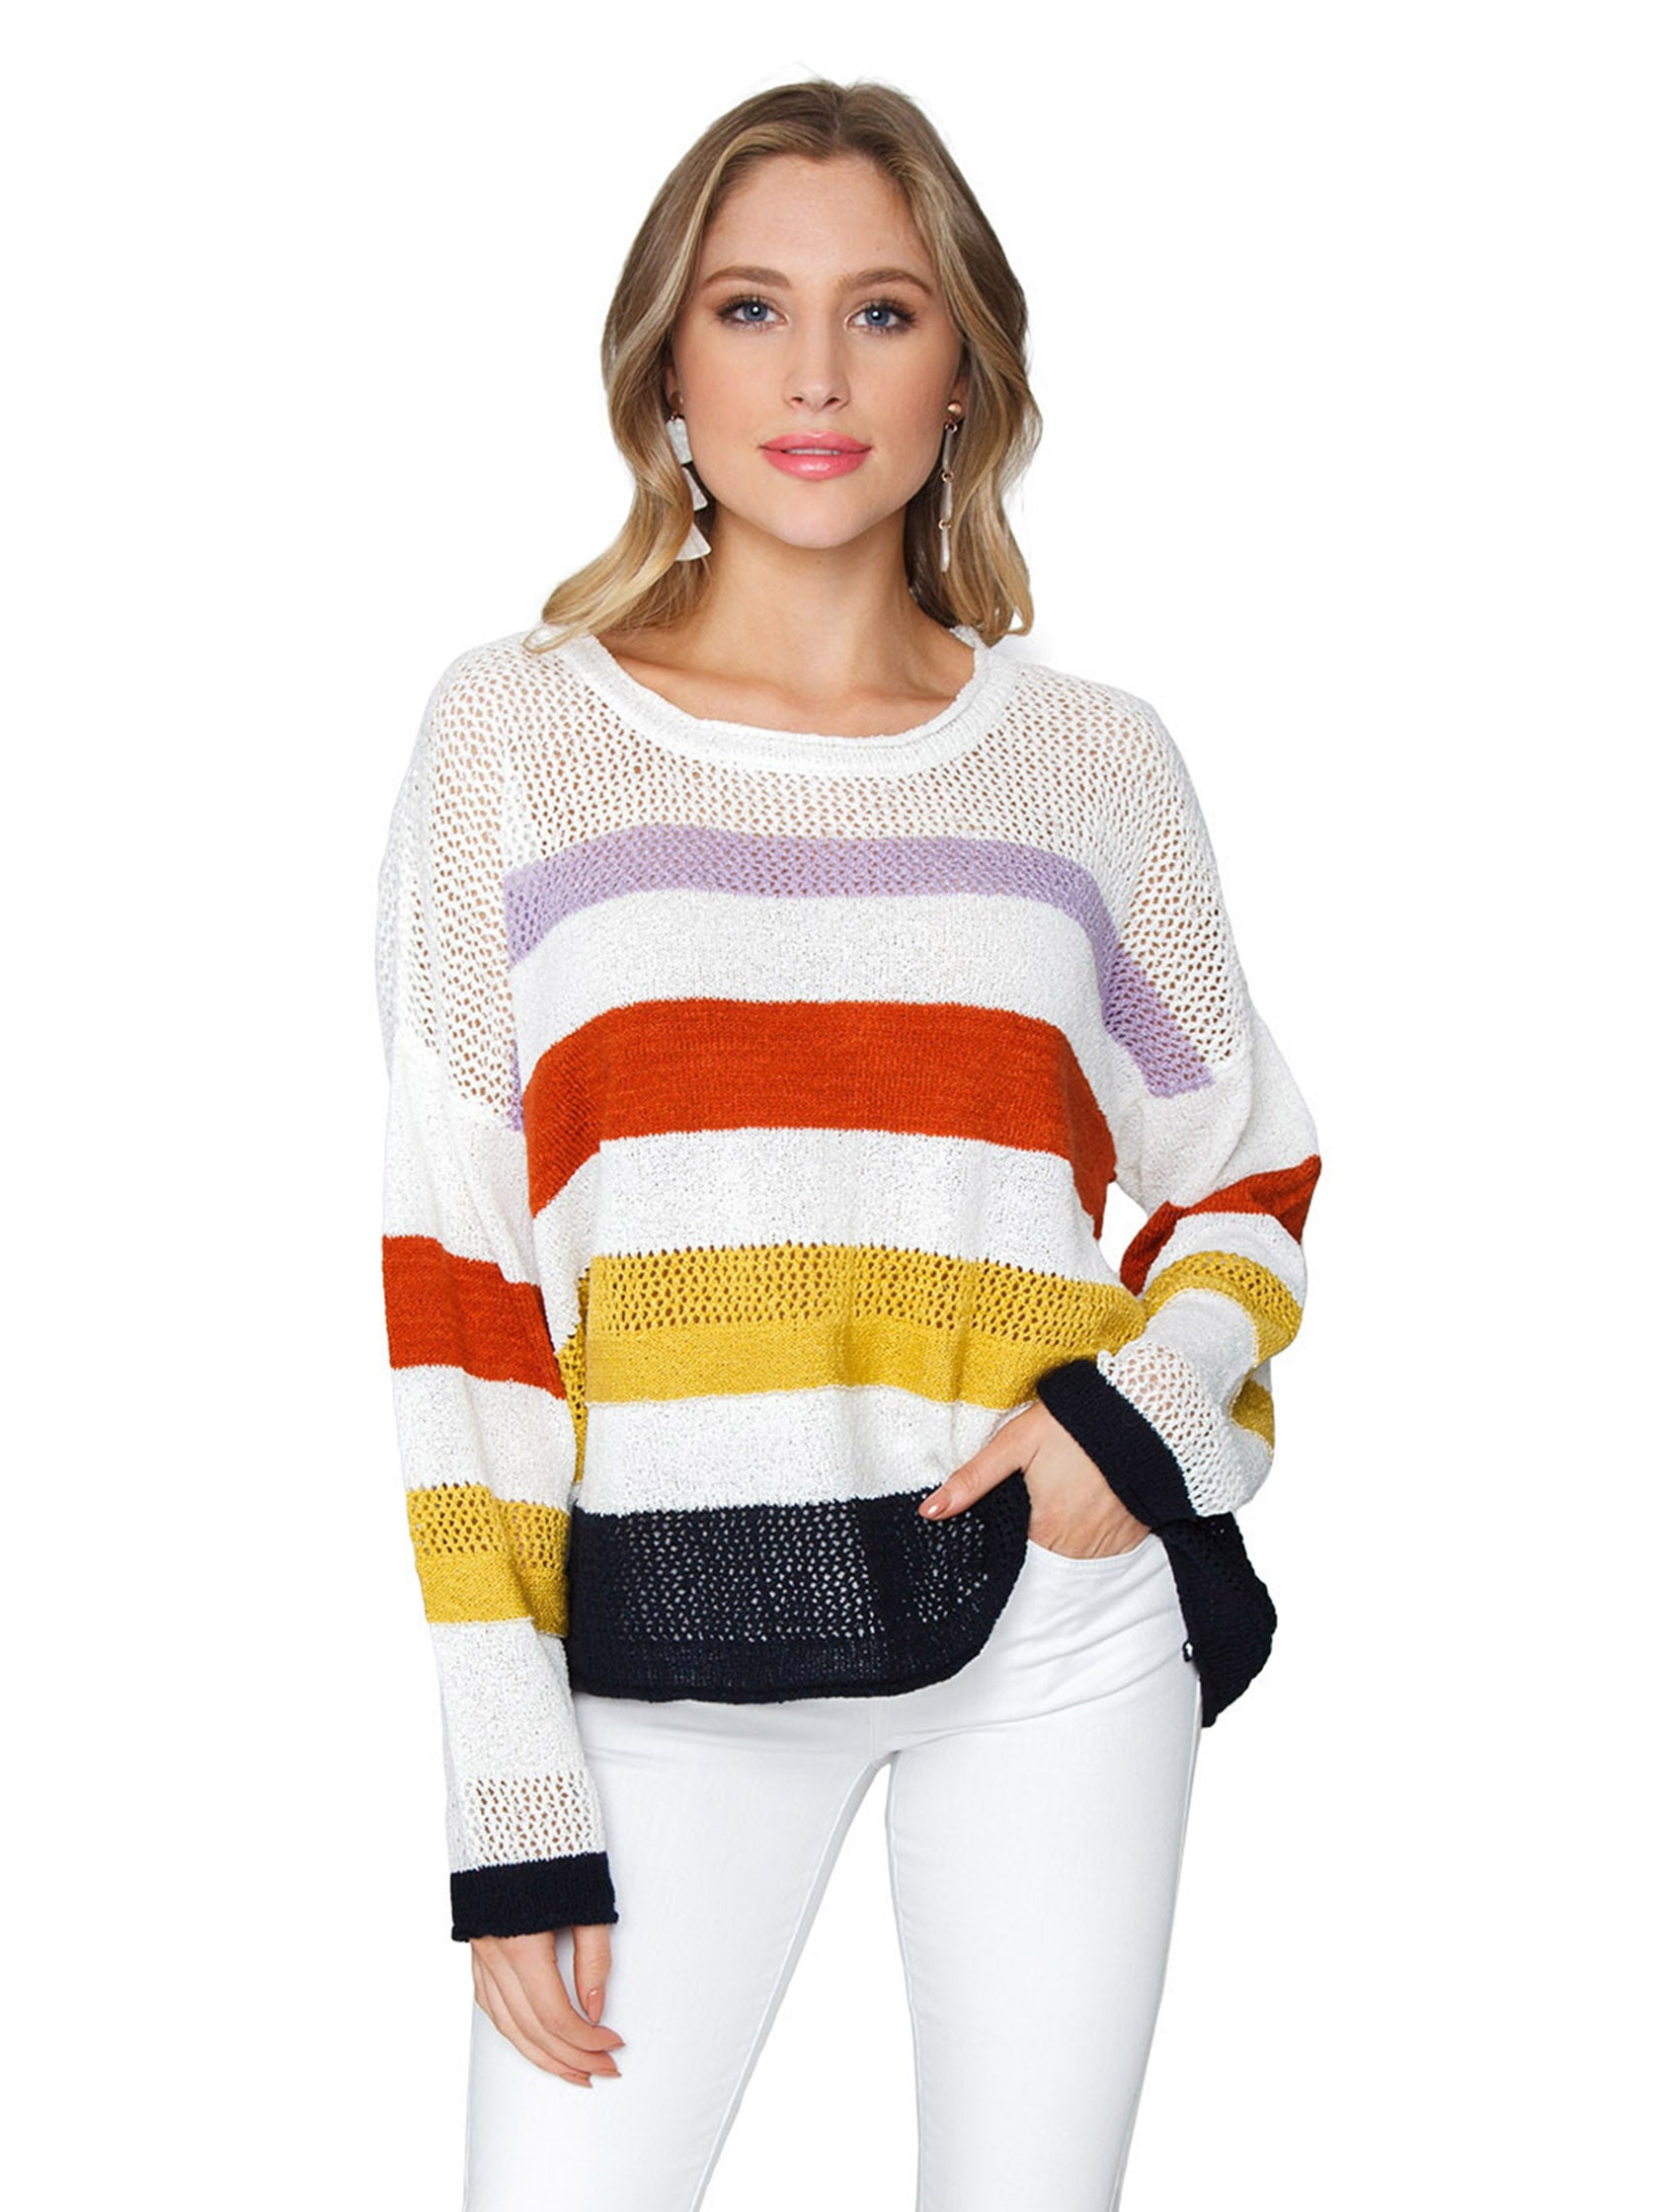 Girl outfit in a sweater rental from FashionPass called Lightweight Stripe Sweater